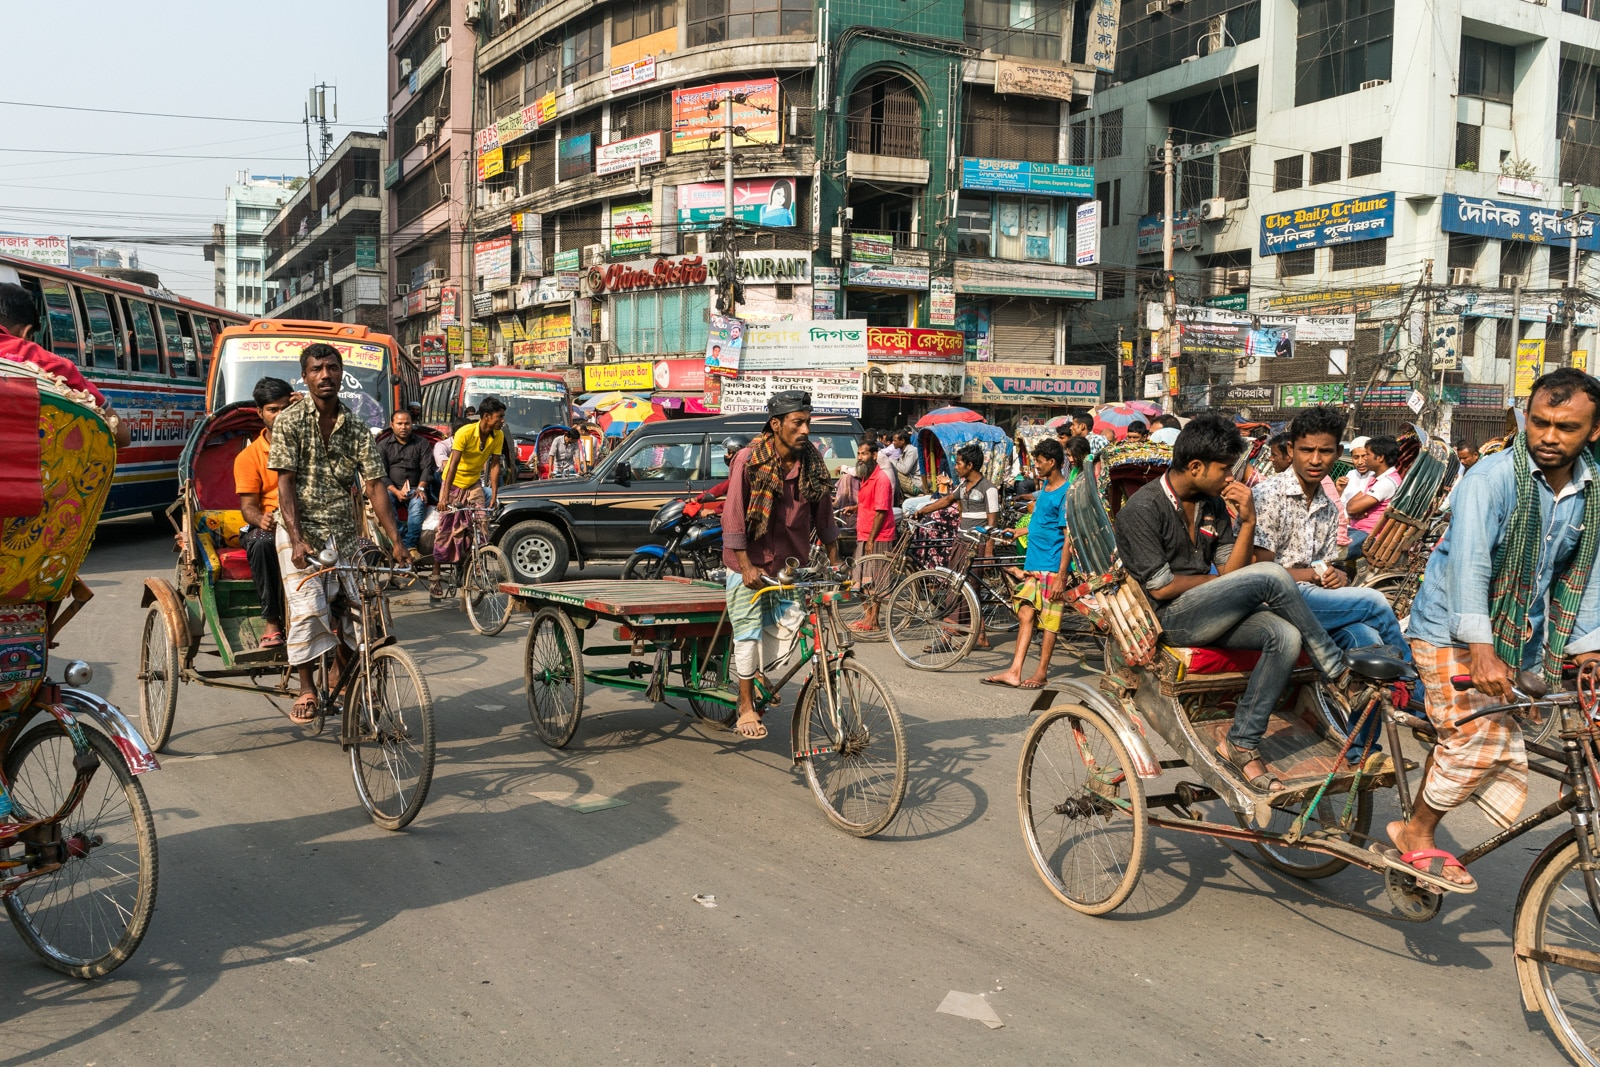 Backpacking in Bangladesh travel guide - Traffic in Dhaka - Lost With Purpose travel blog